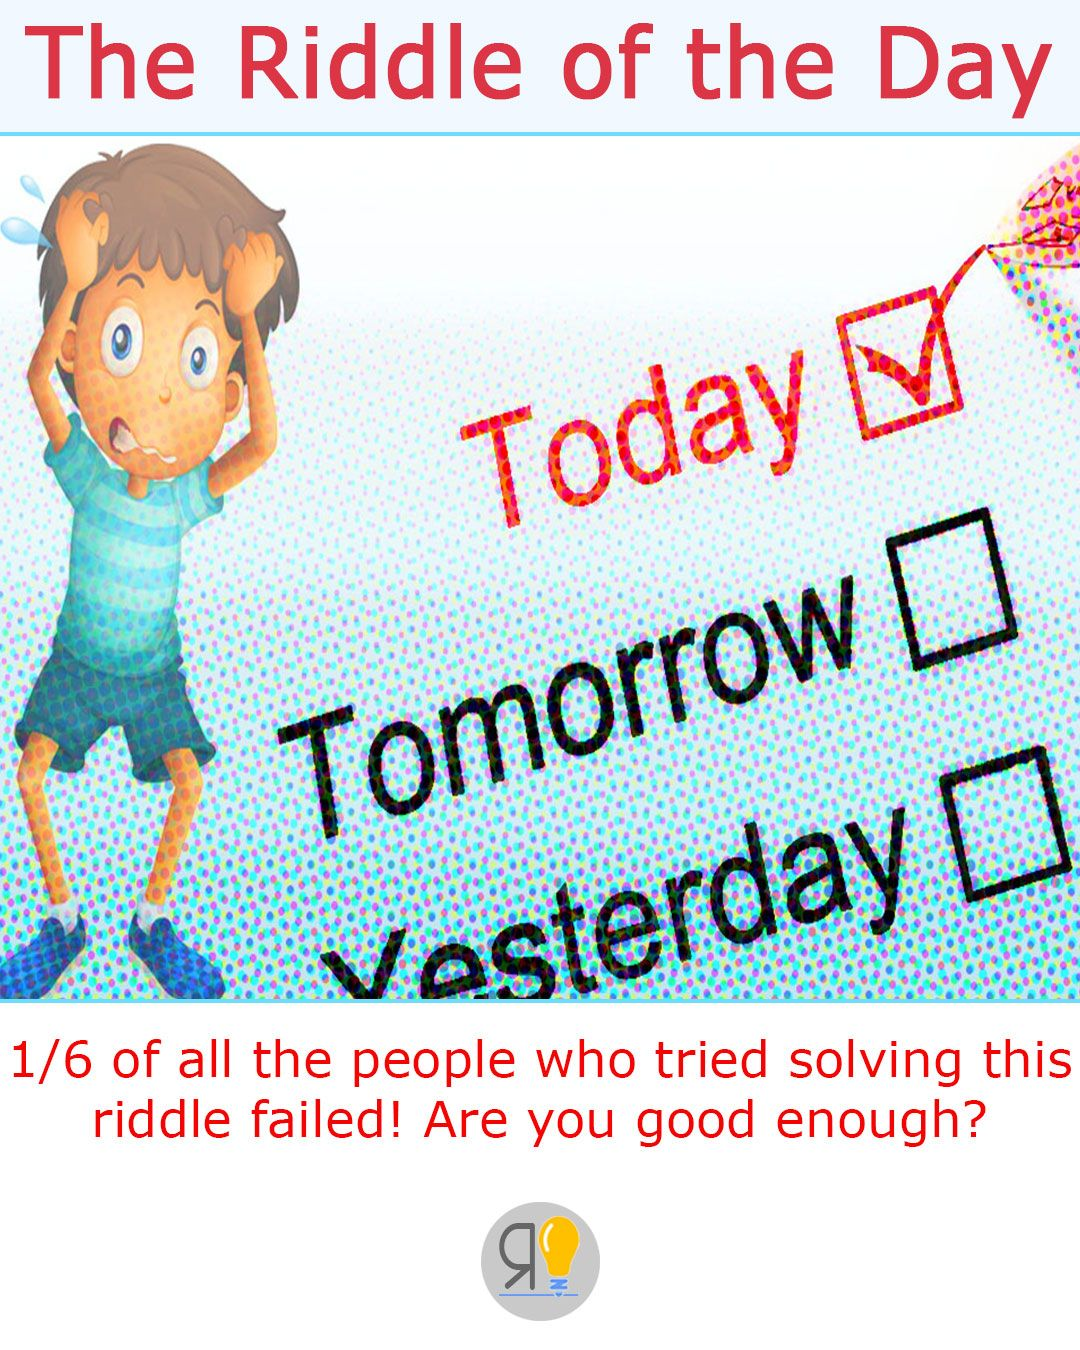 Pin by Marcus James on जवाब के साथ पहेलियों Riddles with